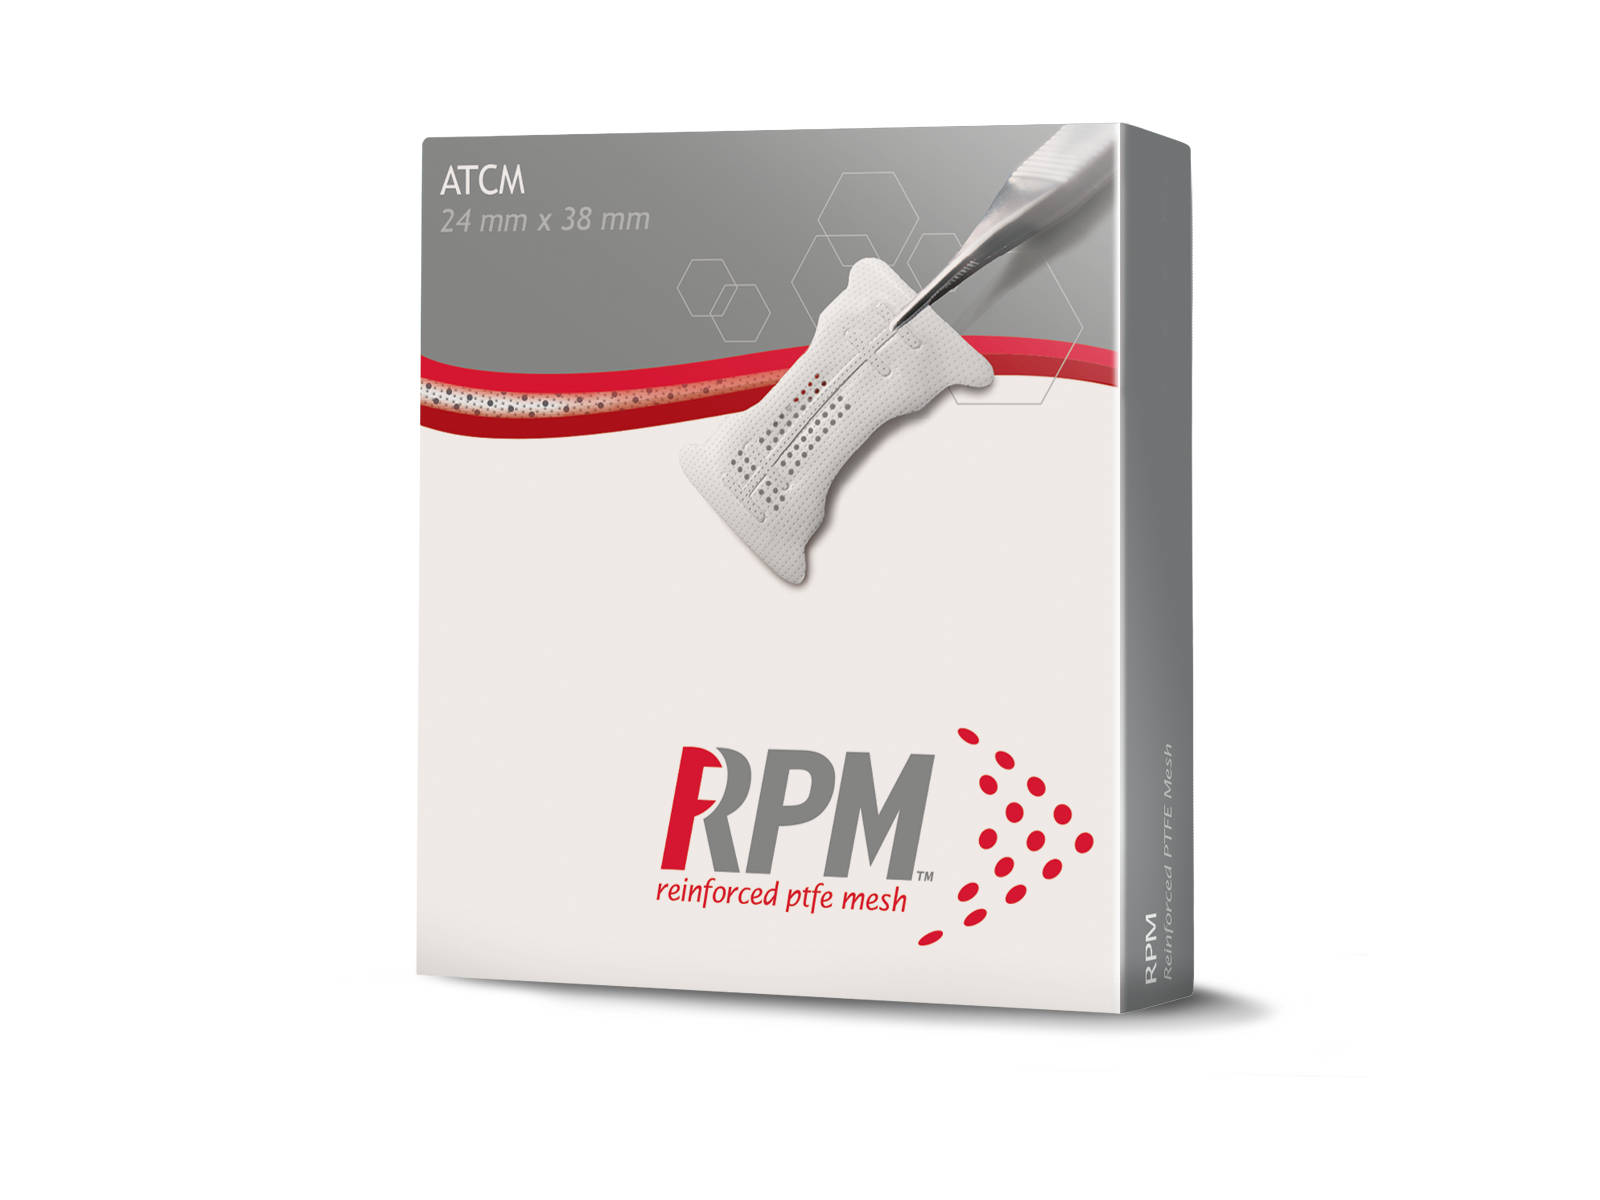 Picture of Geistlich RPM200ATCM Interproximal Shapes 24 mm x 38 mm, 1 Unit/Box